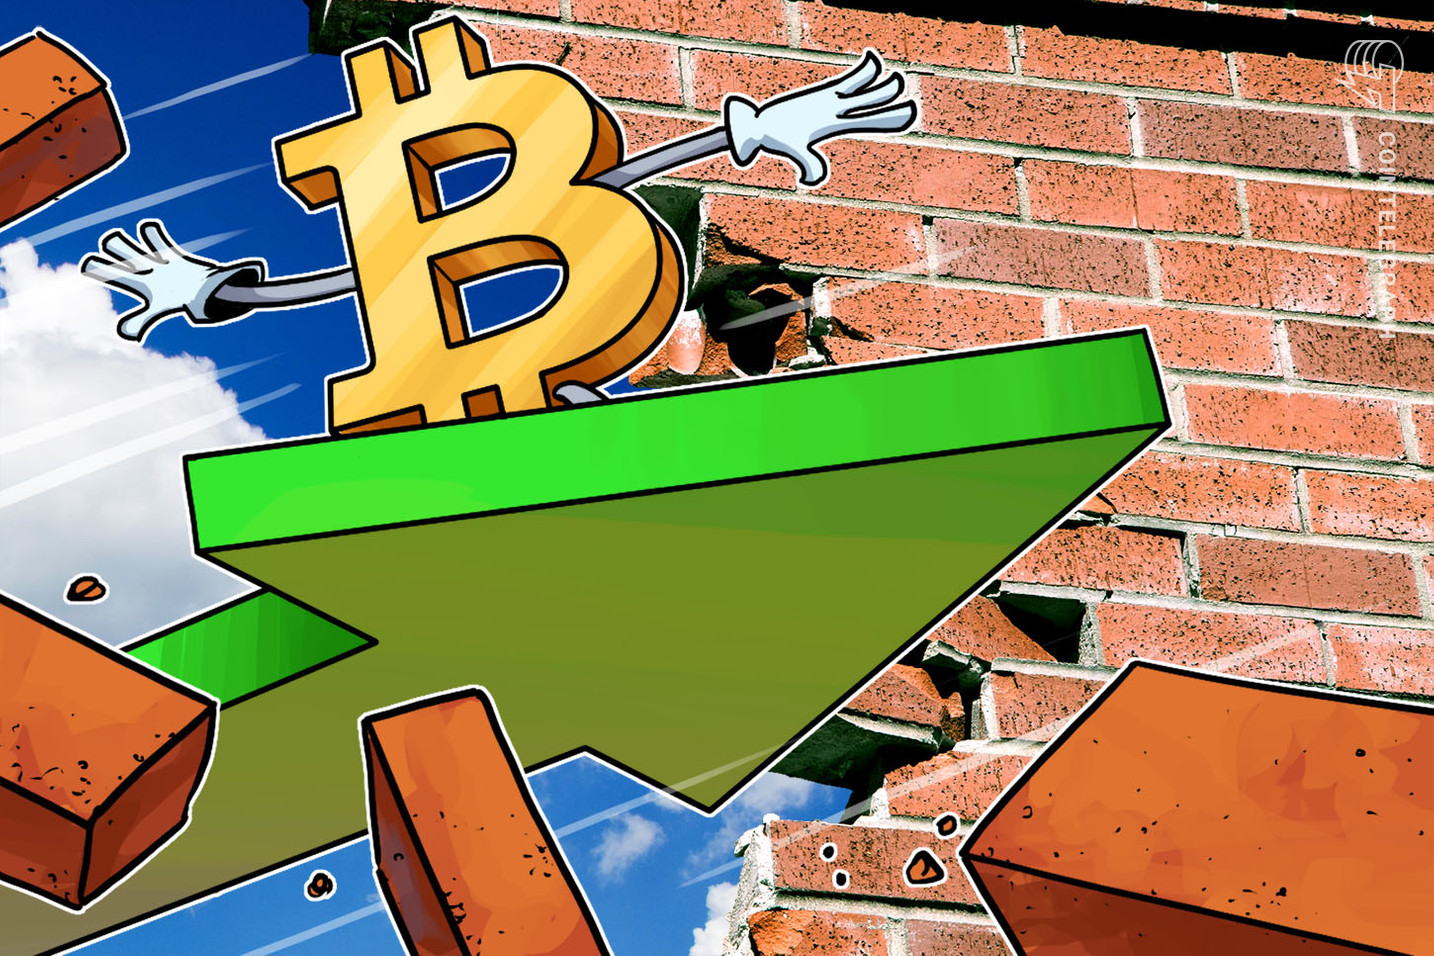 Bitcoin Price Finally Snaps Multi-Year Downtrend, but Is $20K Now Possible?